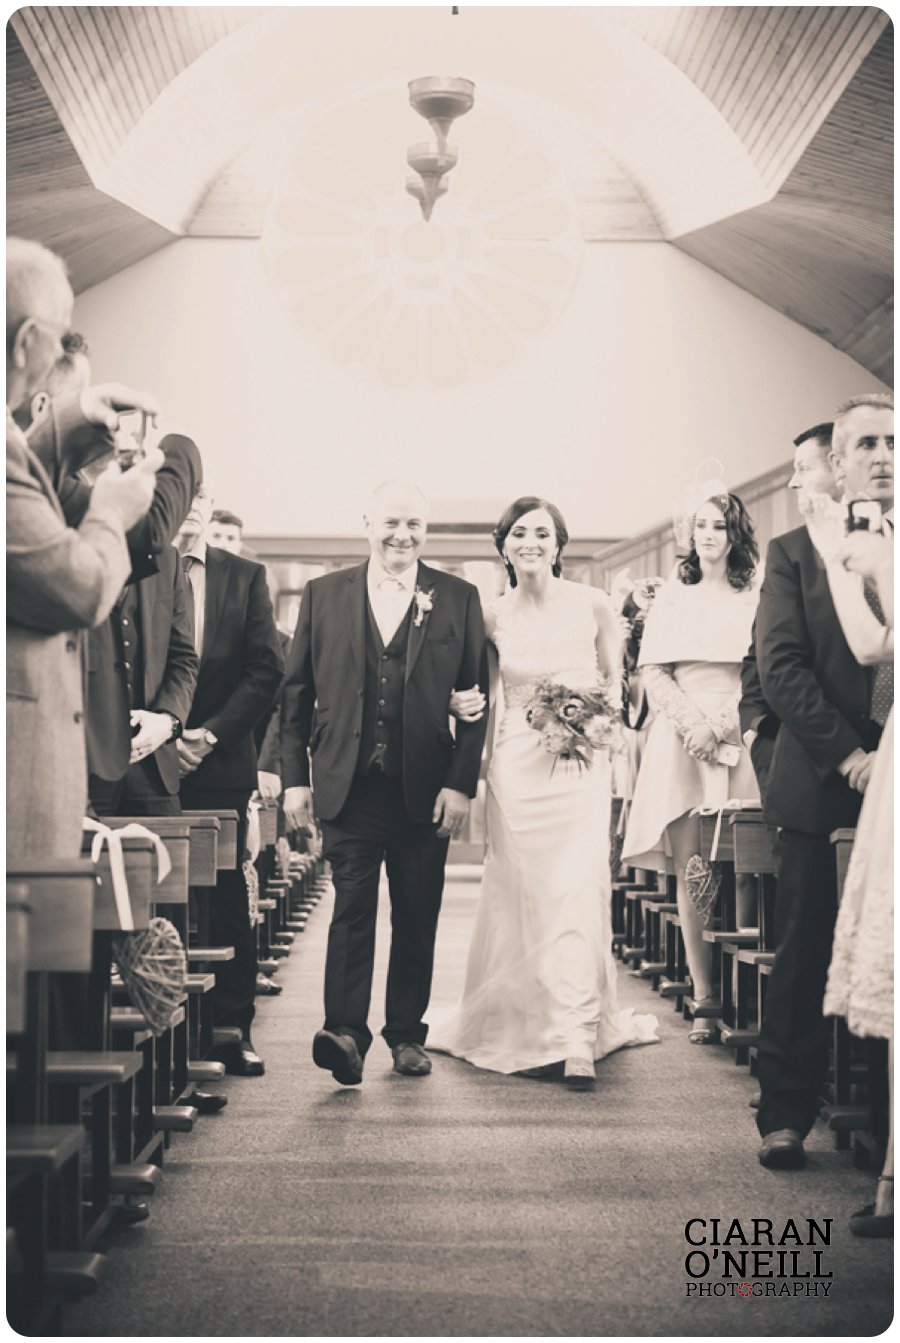 Roisin & Brian's wedding at Slieve Russell Hotel by Ciaran O'Neill Photography 07